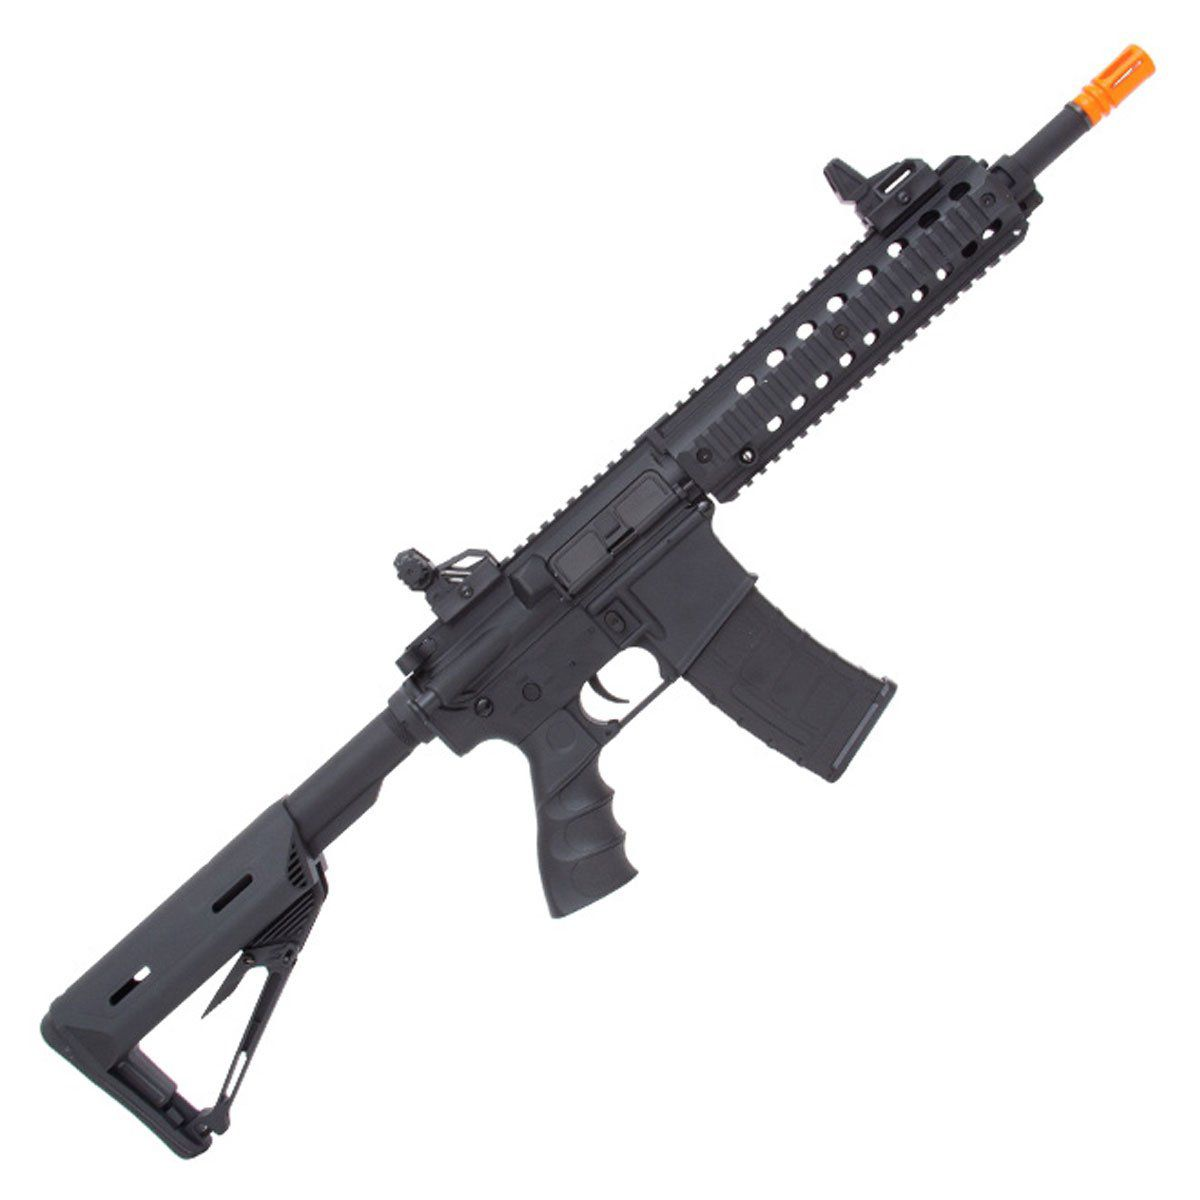 Rifle de Airsoft SRC SR-47 GE-1604 Semi Metal Elétrico